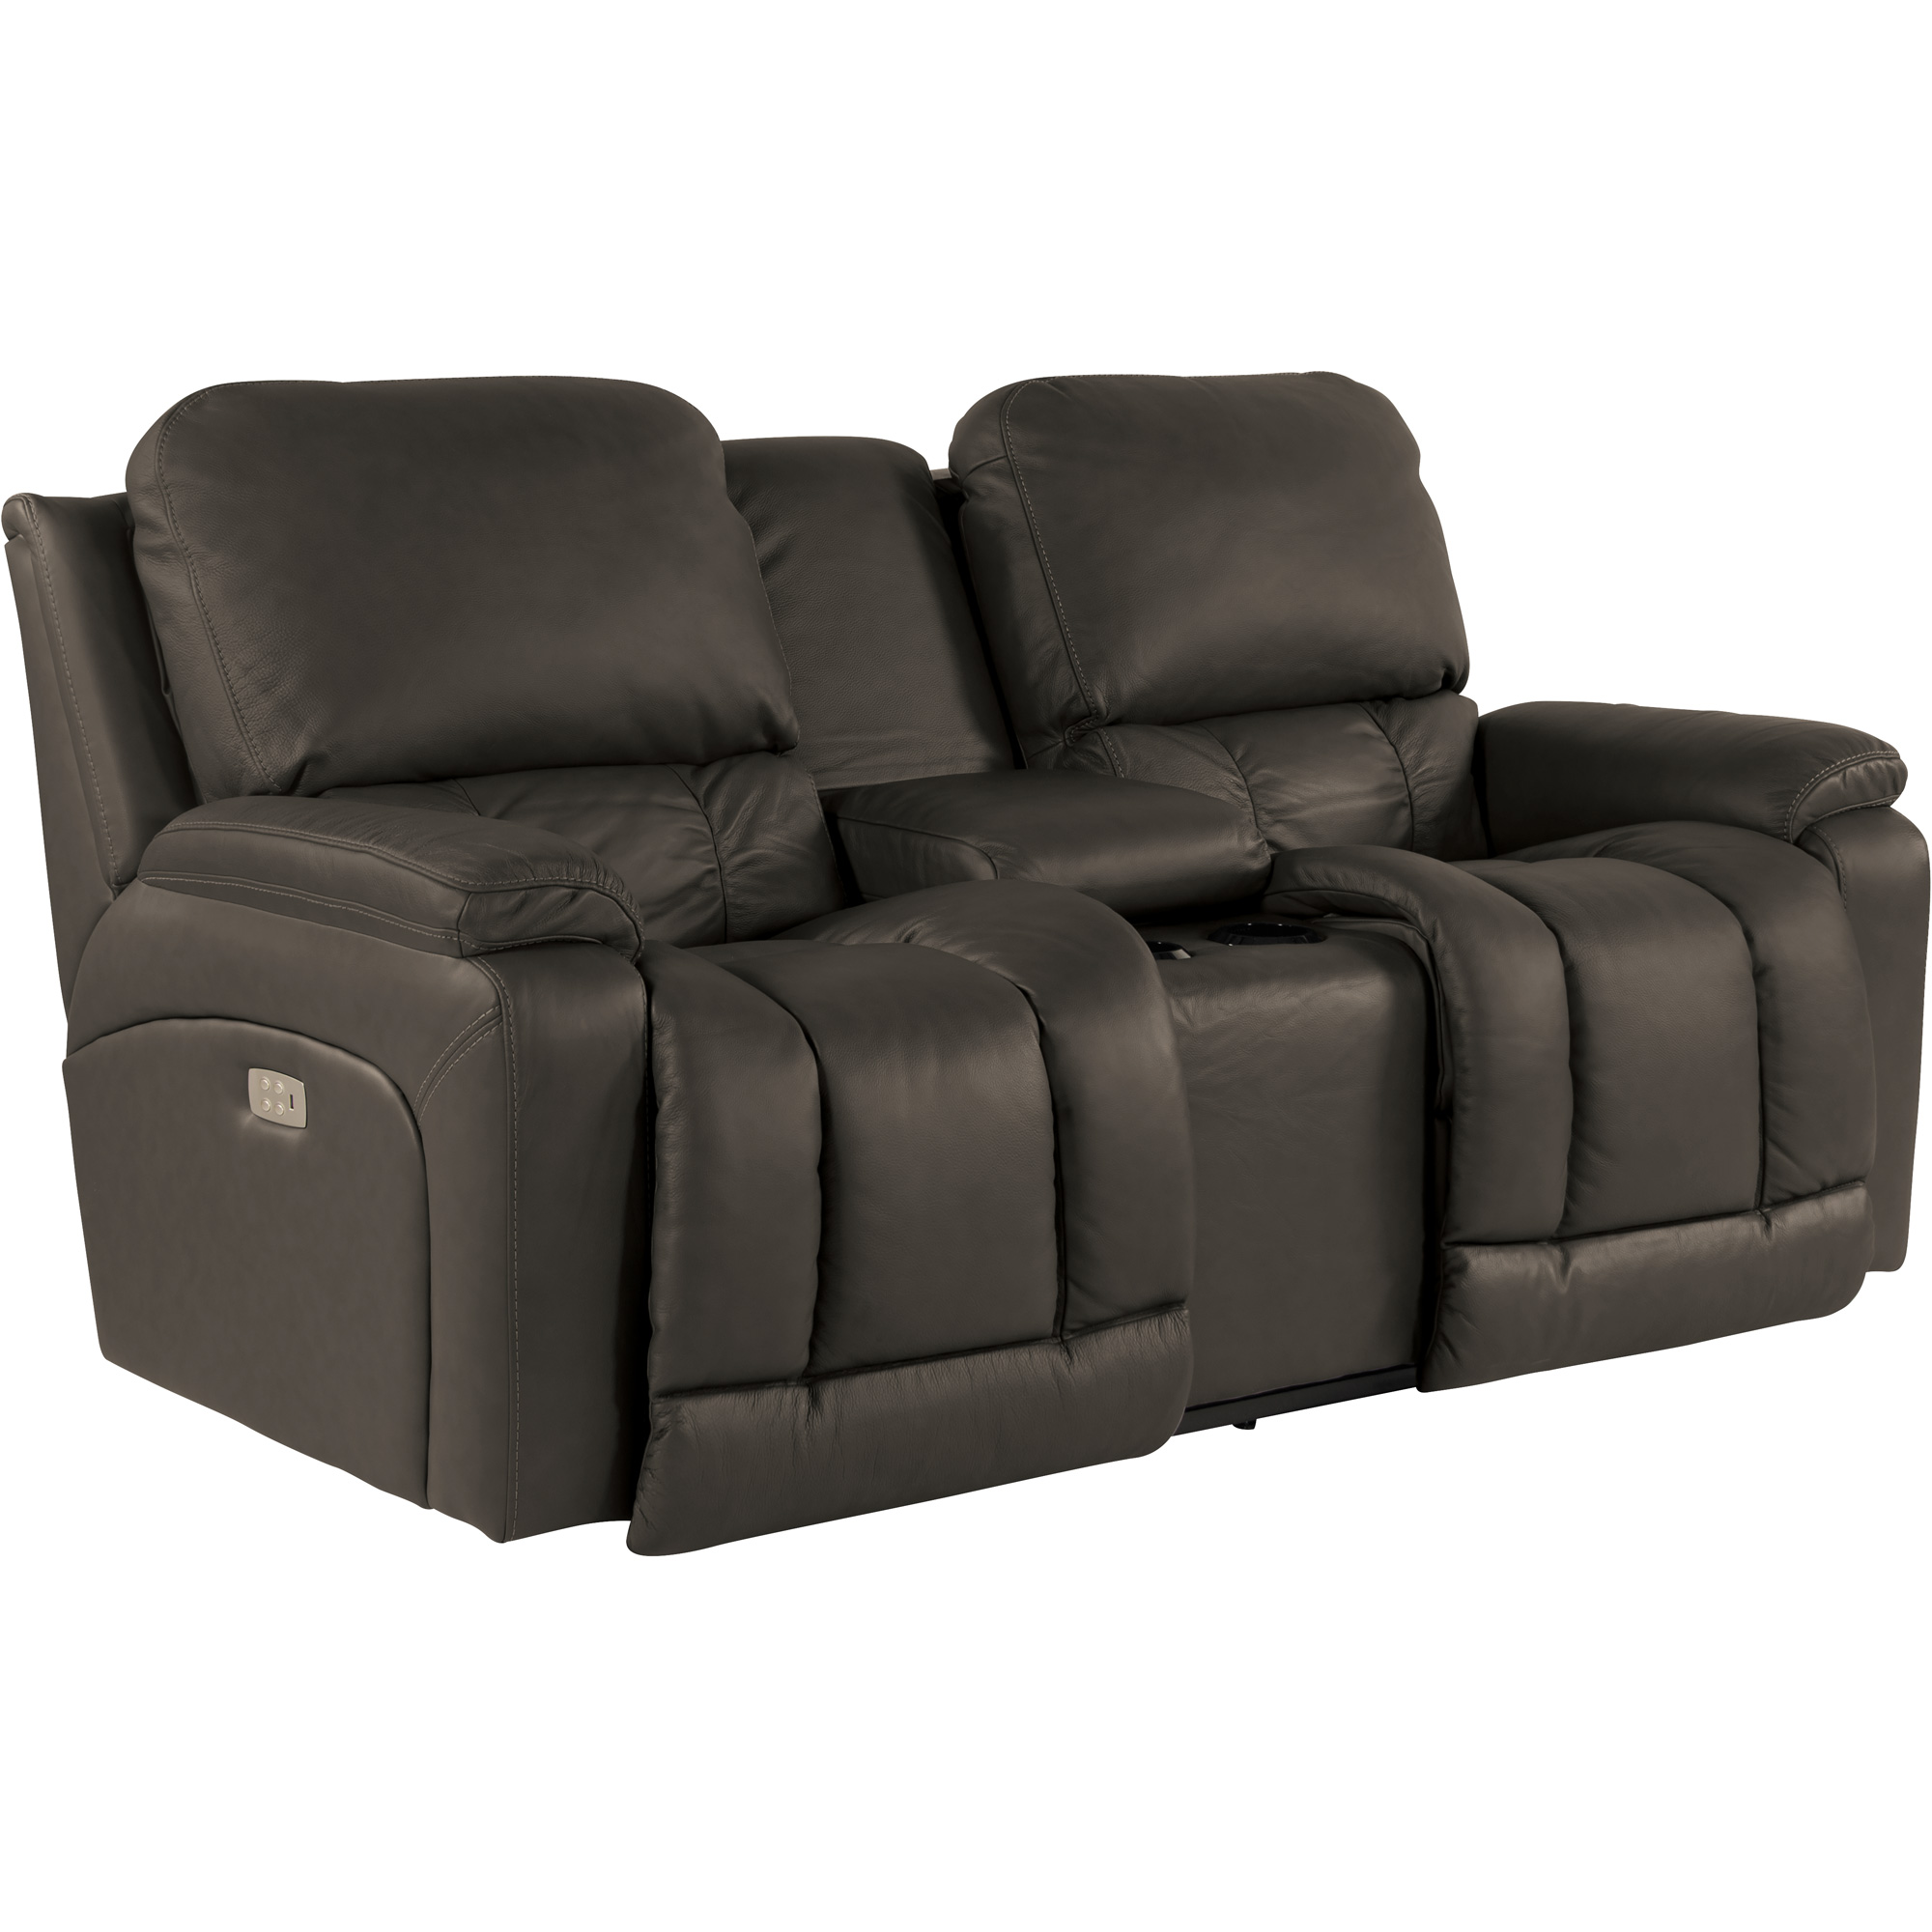 La-Z-Boy | Greyson Shitake Power Plus Reclining Console Loveseat Sofa